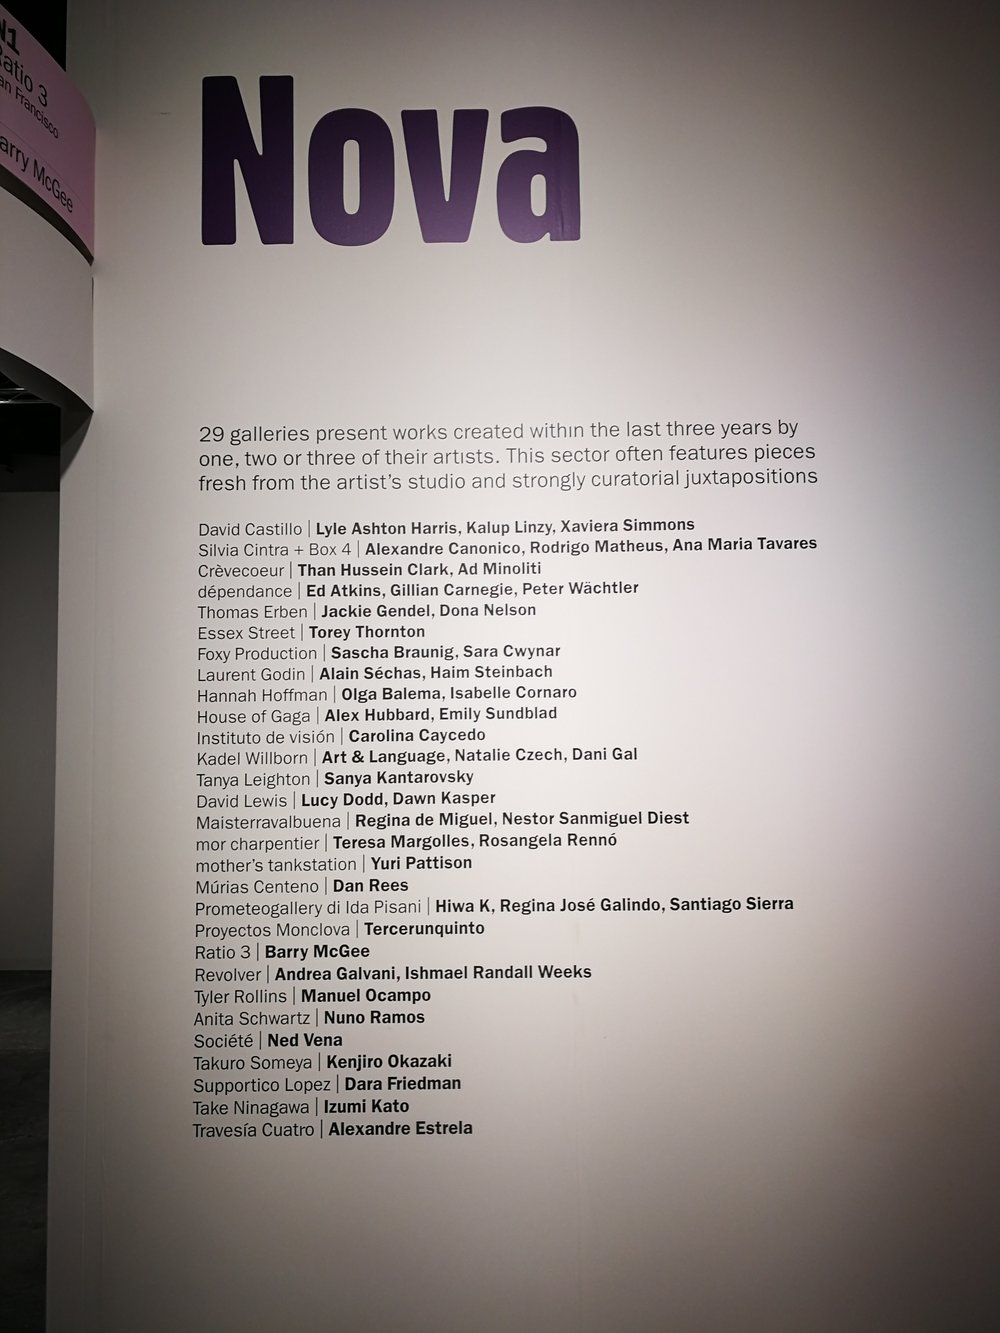 Loved the Nova section at Art Basel Miami, with works created only in the last three years.